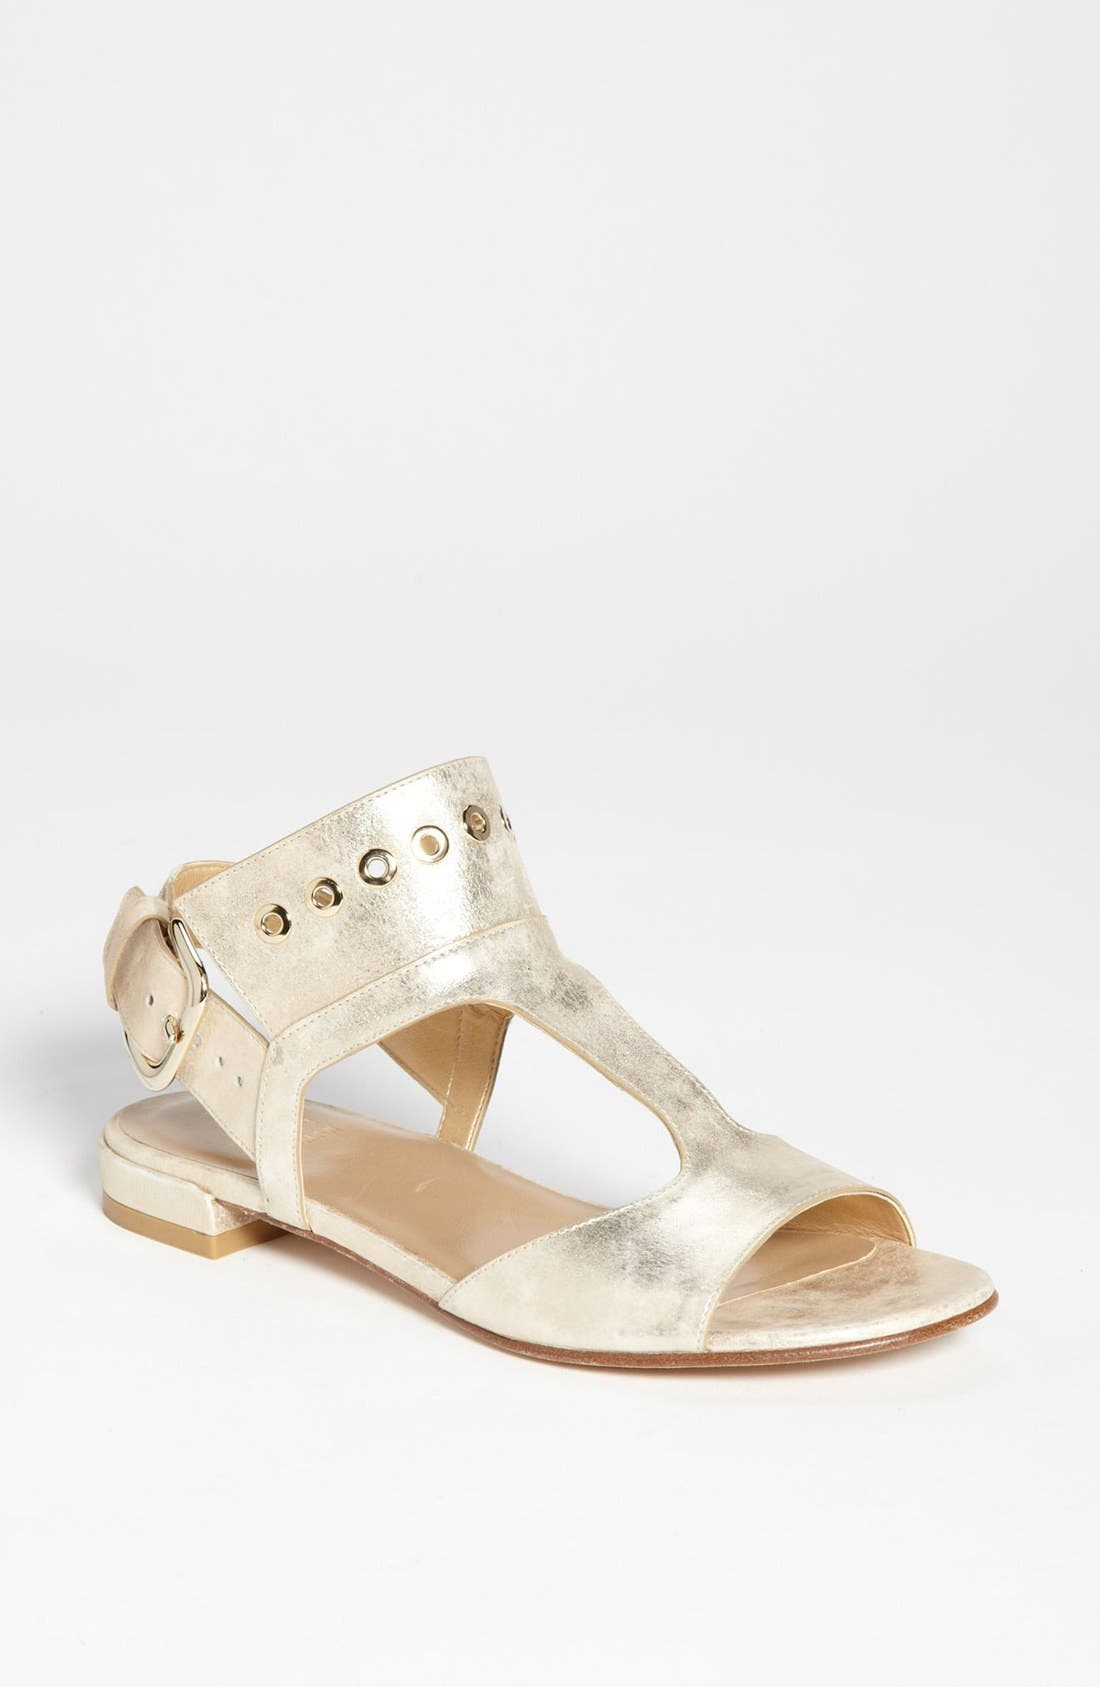 Alternate Image 1 Selected - Stuart Weitzman 'Cuffy' Sandal